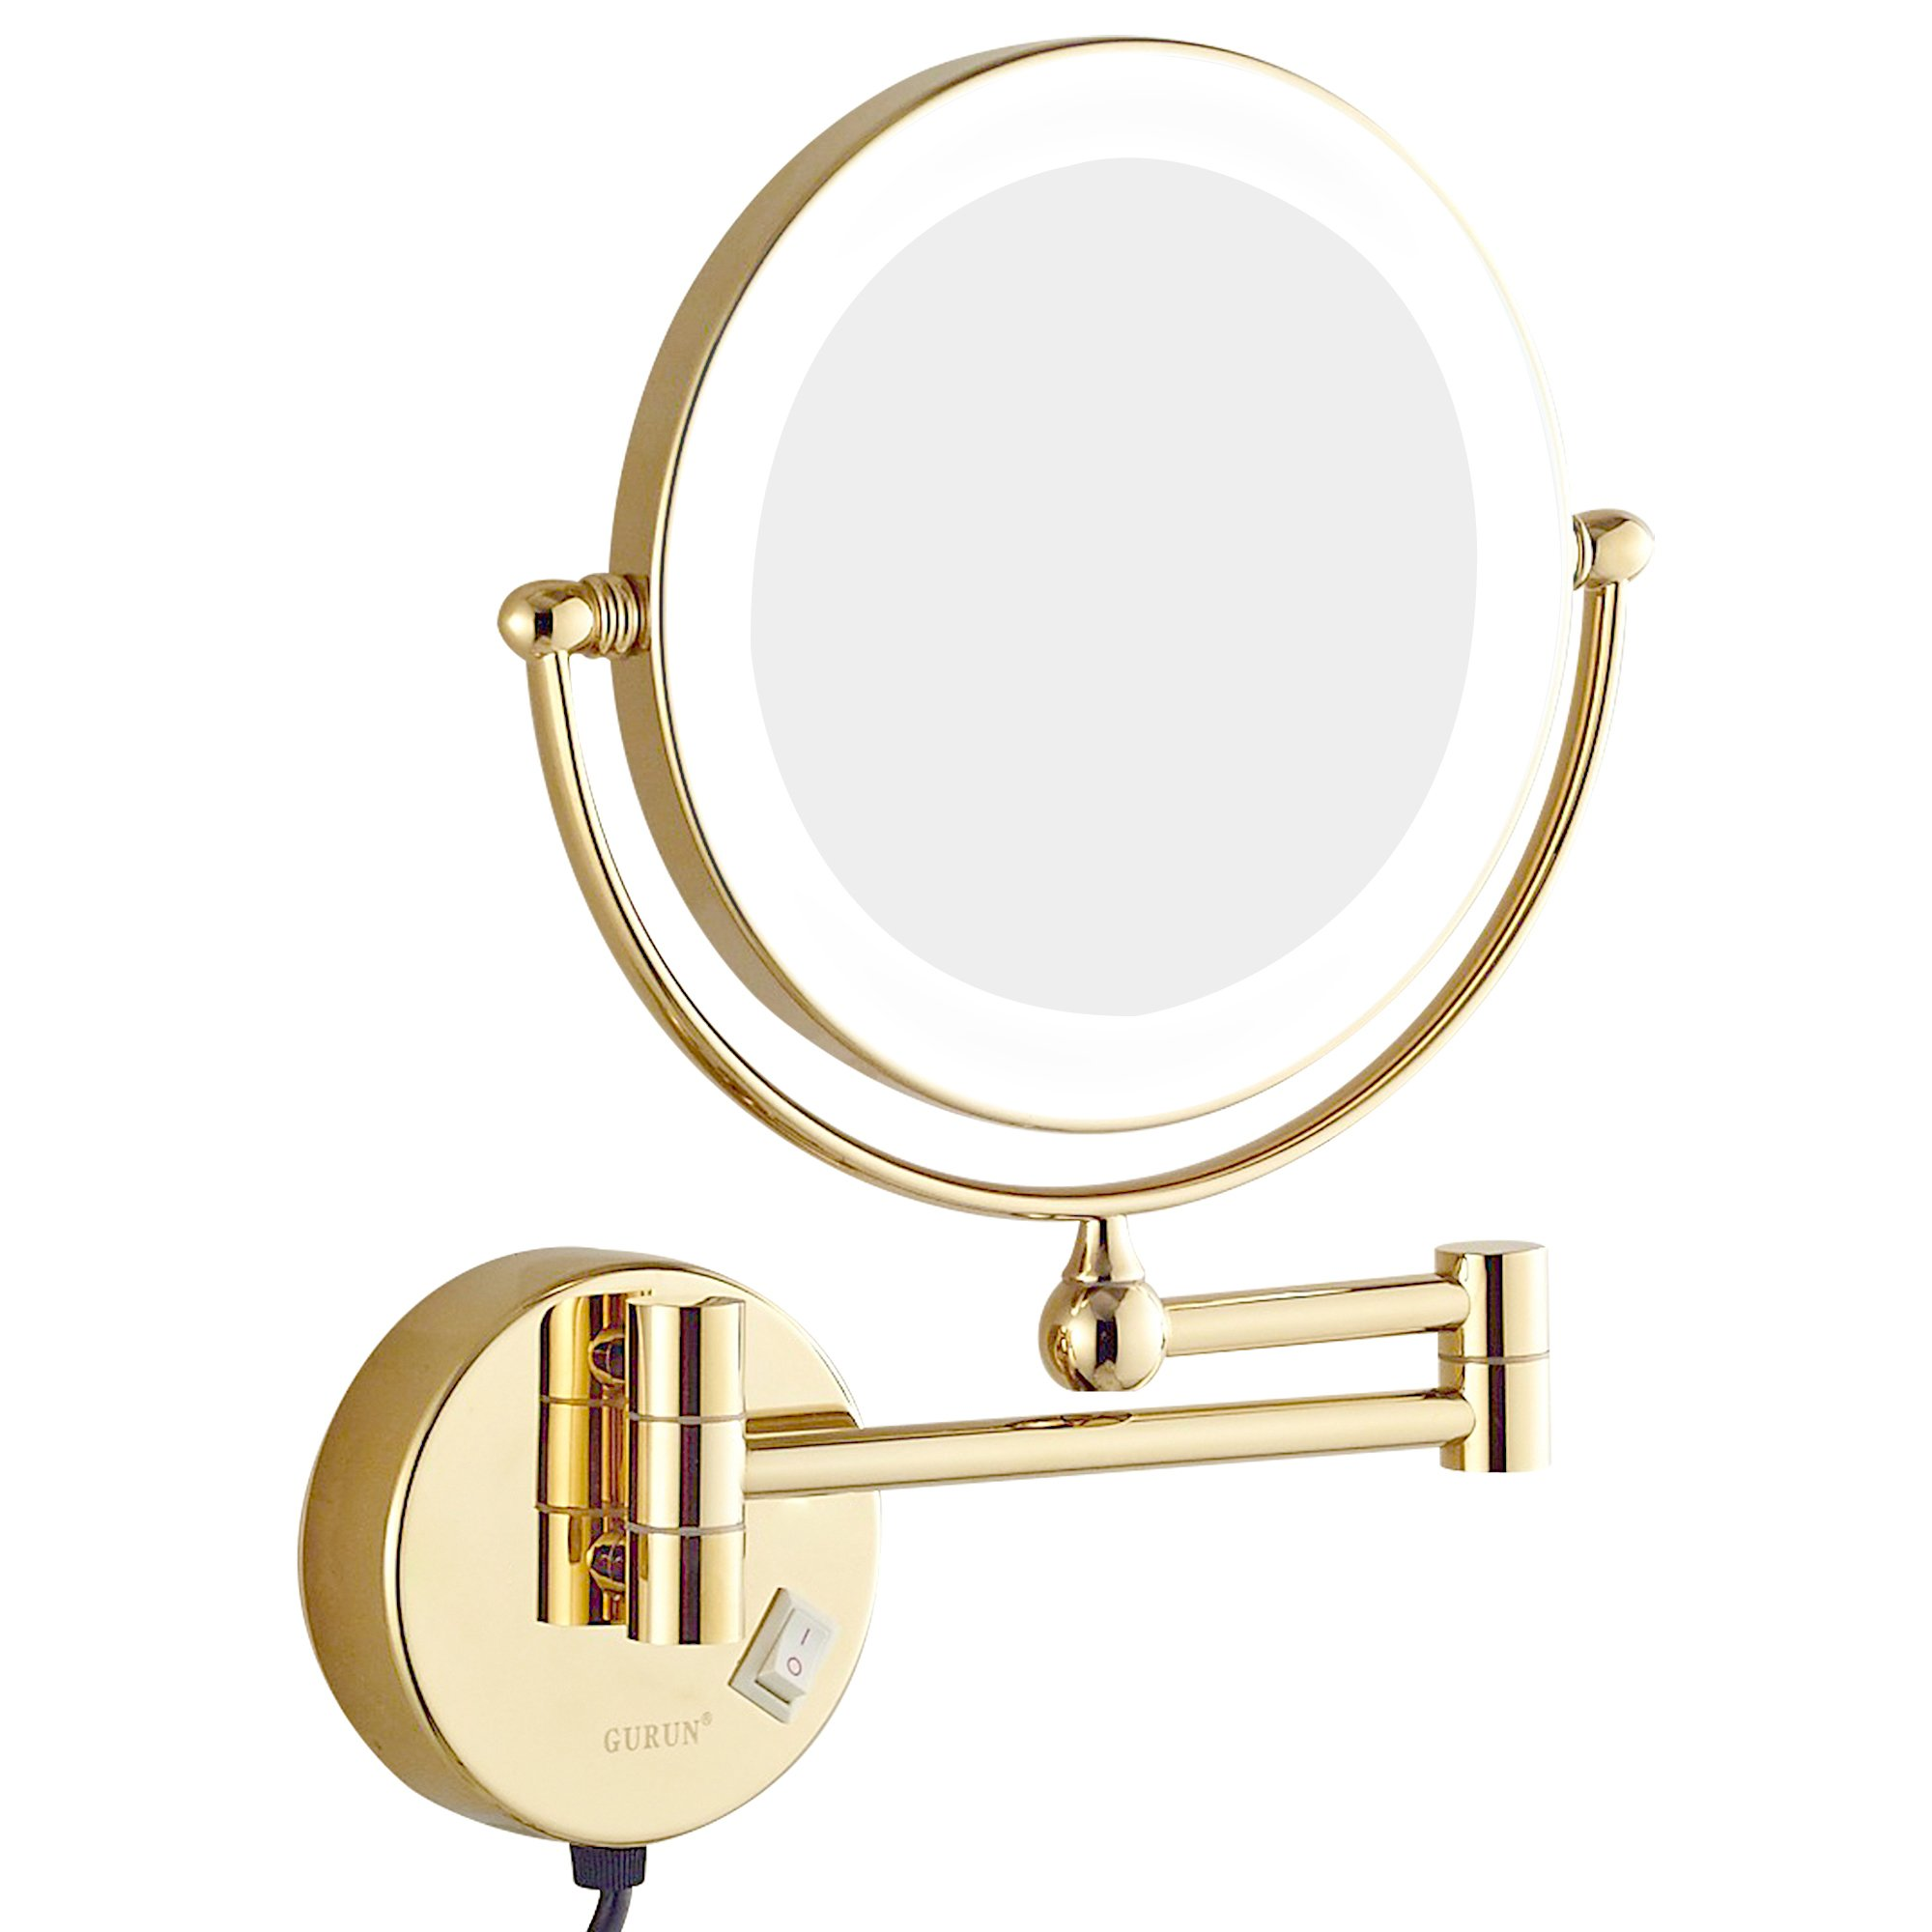 GURUN 8.5 Inch LED Lighted Wall Mount Makeup Mirrors with 7x Magnification,Gold M1805DJ(8.5in,7x)